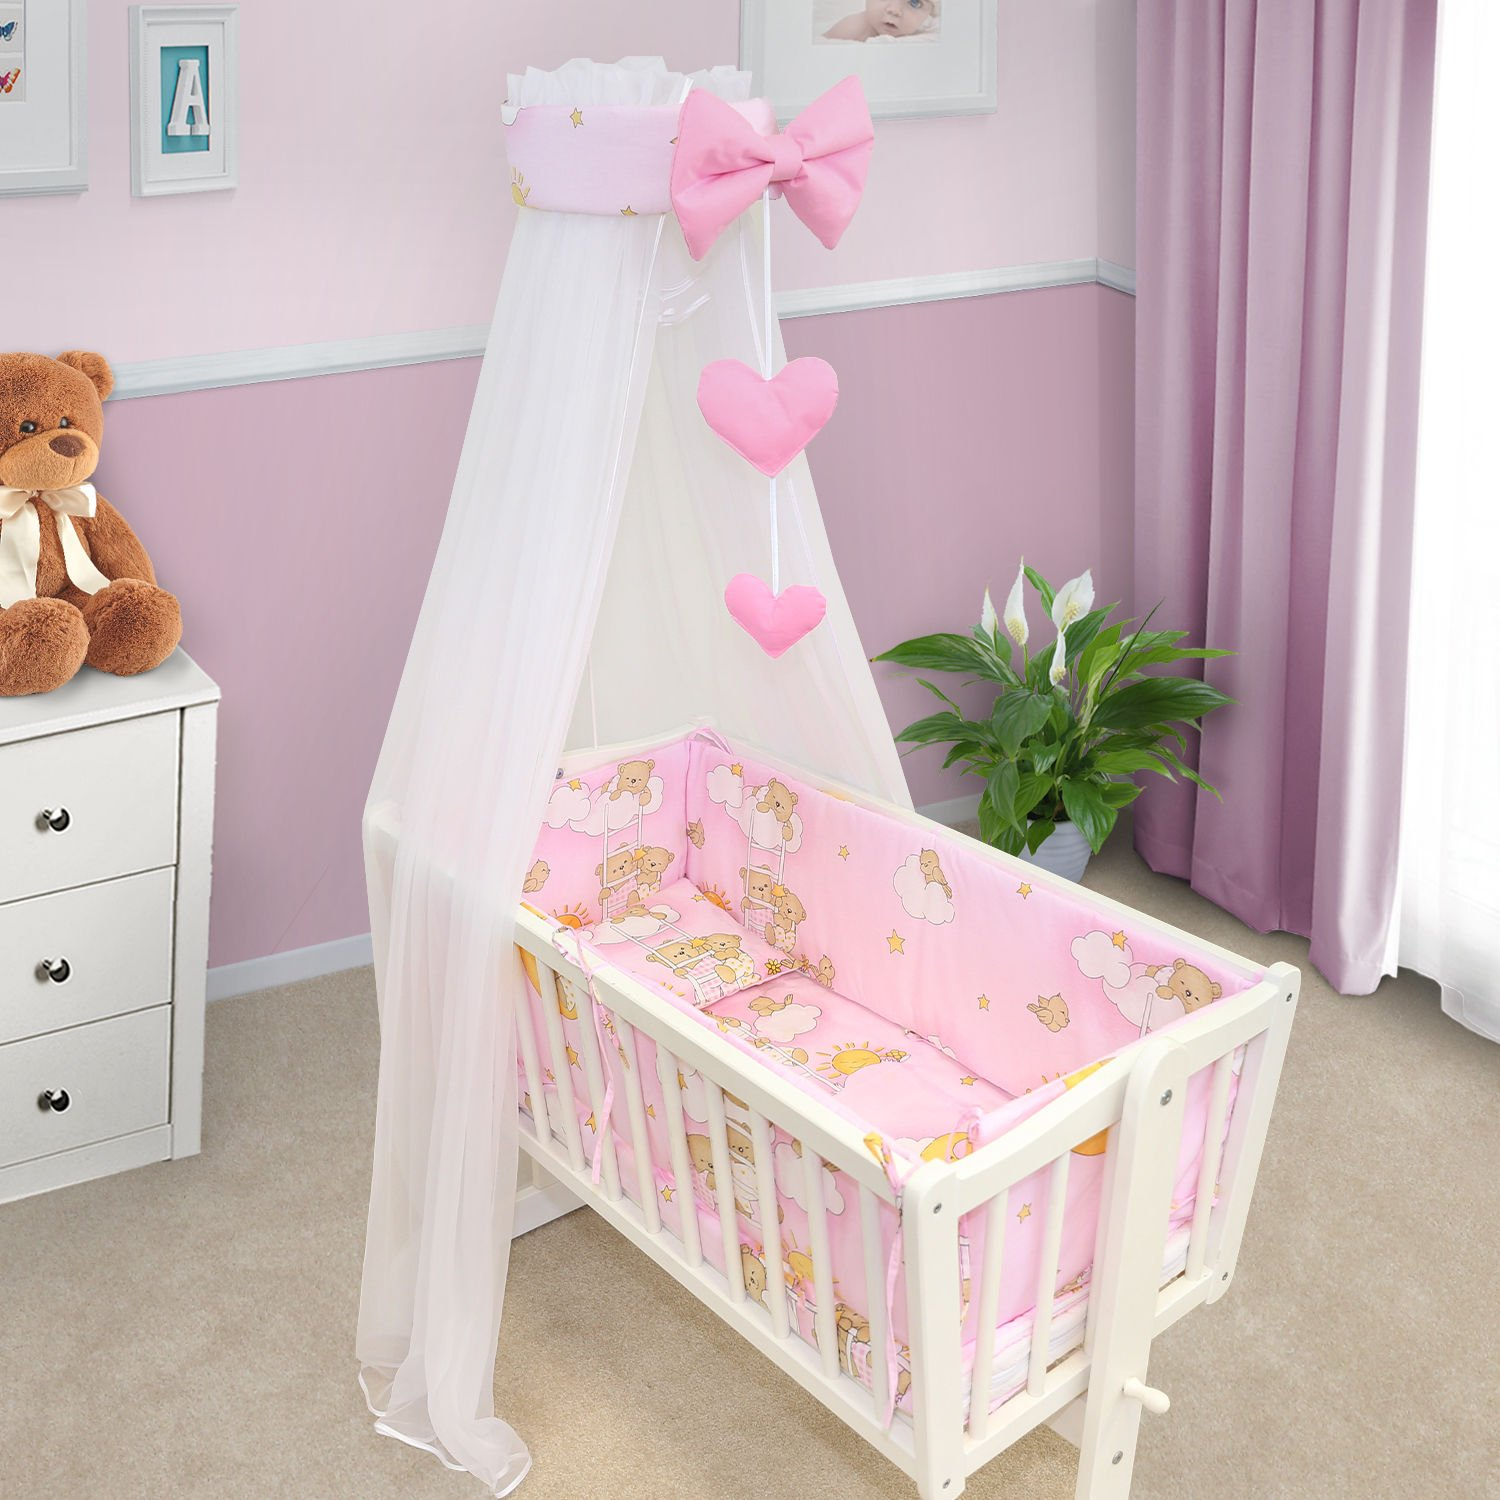 BABY BEDDING SET CRIB CRADLE 10 Pieces PILLOW DUVET COVER BUMPER CANOPY to fit Crib 90x40cm 100% COTTON (Ladder cream) TheLittles24